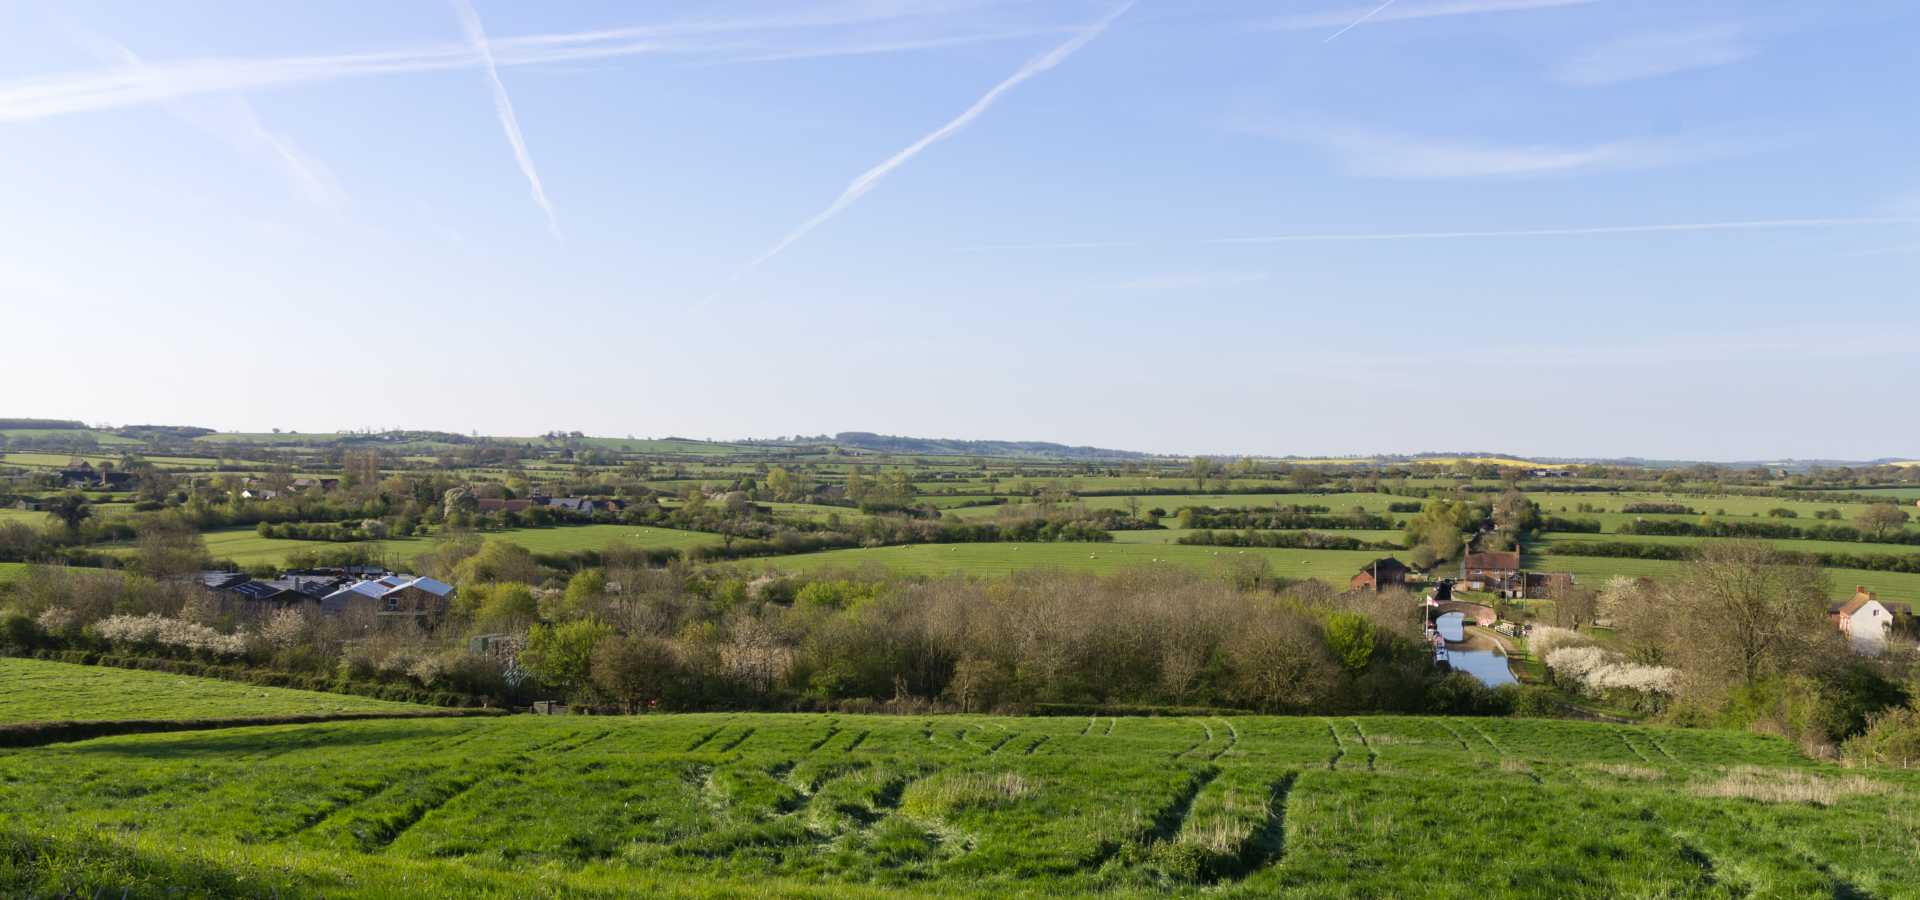 Lontra's headquarters (left) in Napton and the surrounding countryside.